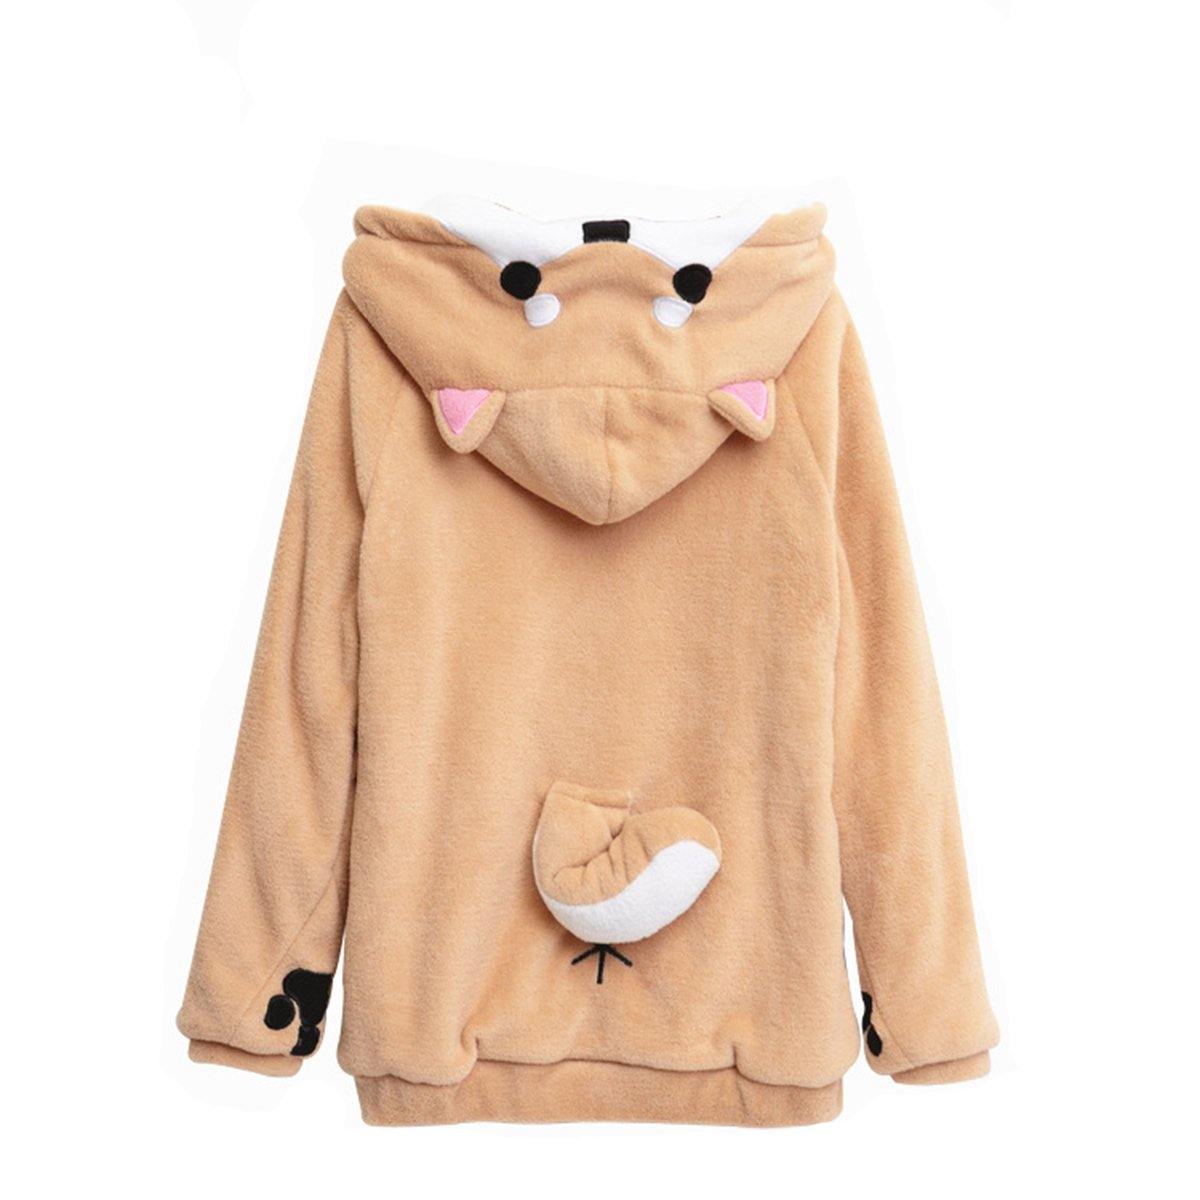 5f44829f3a33ff CORIRESHA Cute Coral Celvet Long Sleeve Shiba Inu Dog Home Wear Clothes Hoodie  Sweatshirt with 3D Dog Ear and Dog Tail at Amazon Women s Clothing store